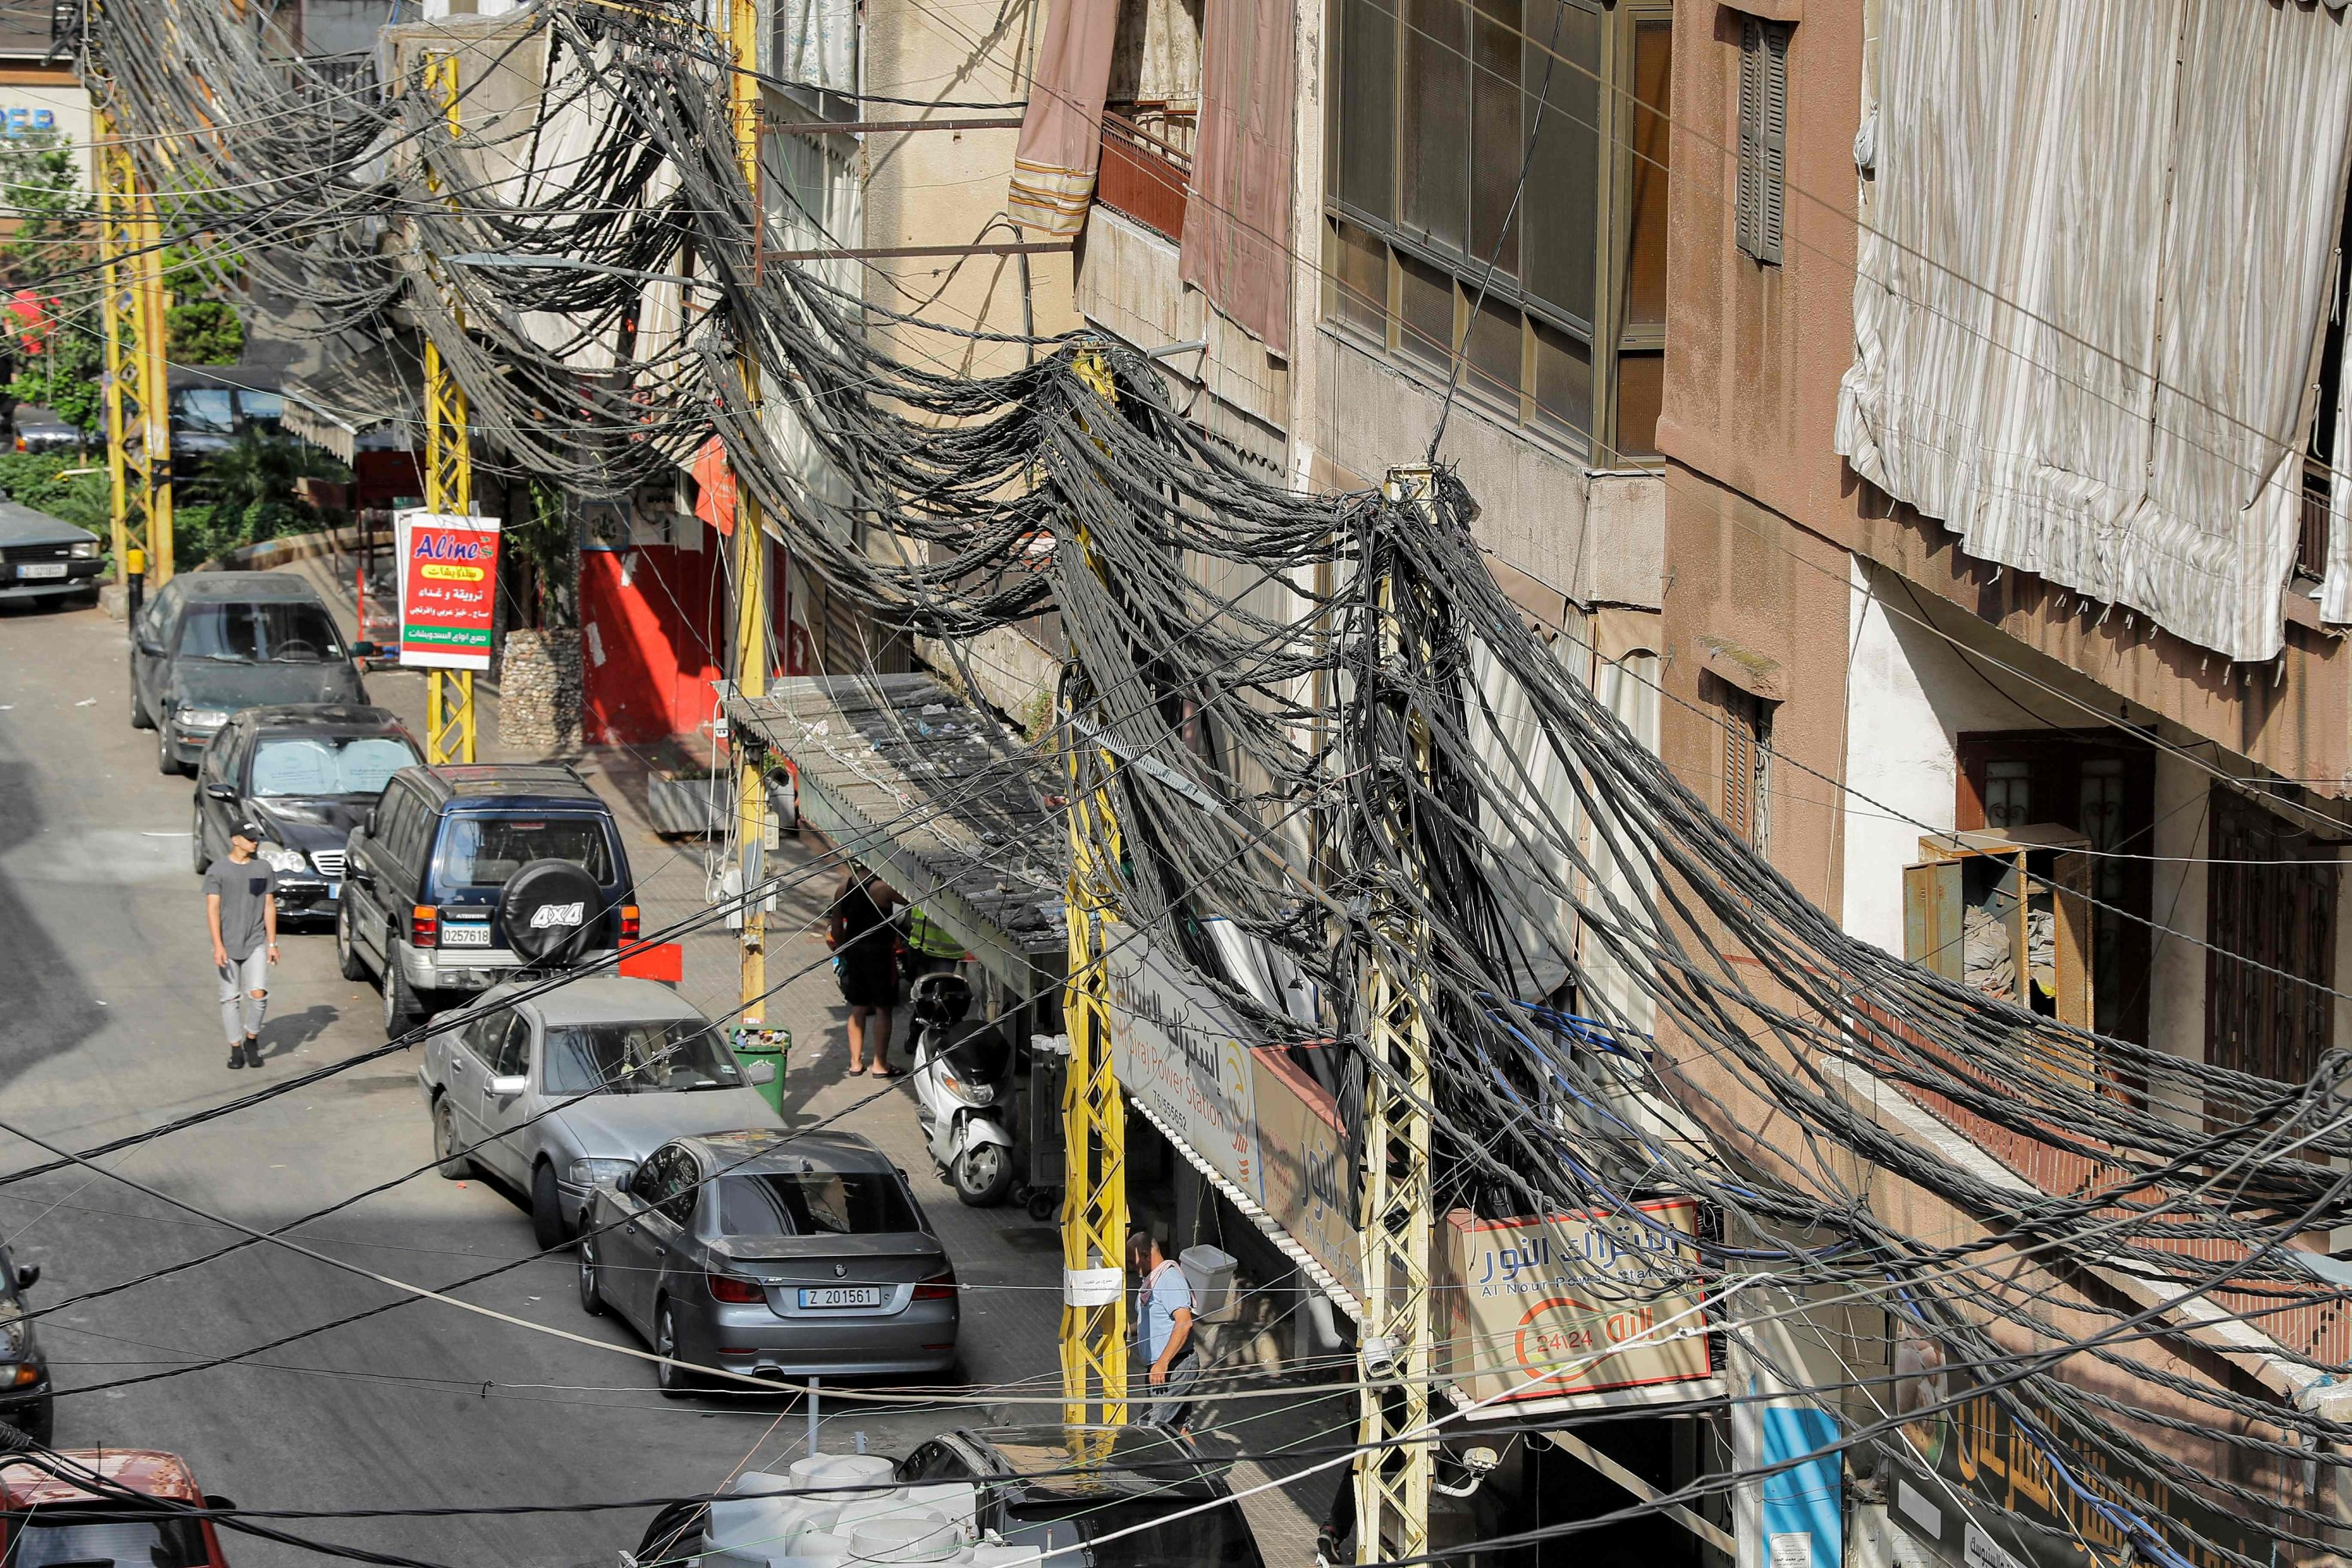 A view of a chaotic mesh of electricity lines along a street in a suburb of Beirut, Lebanon, June 23, 2021. (AFP Photo)